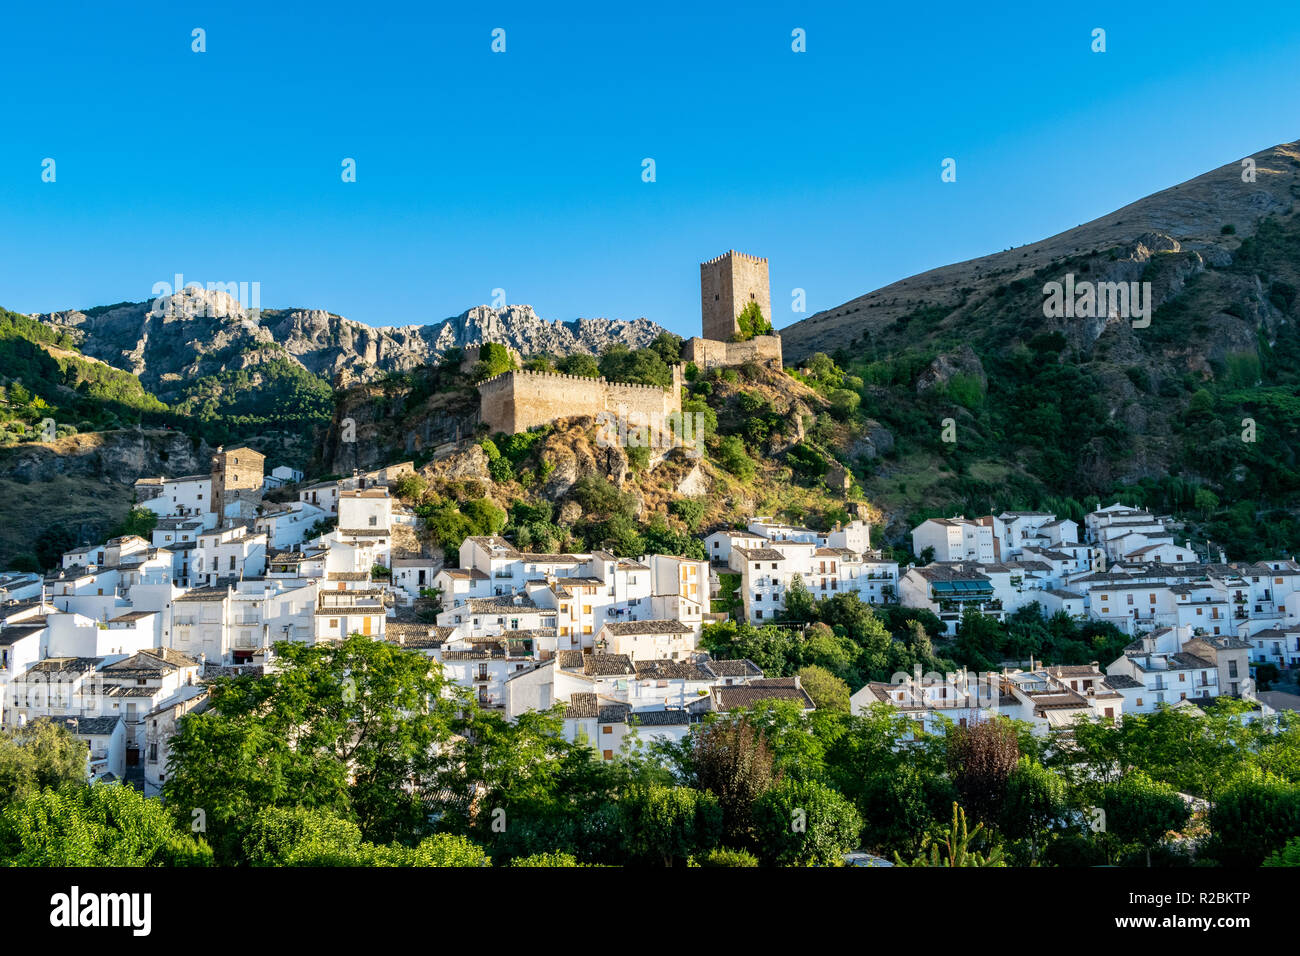 an amazing view of the practically the whole town of Cazorla in southern Spain including the main castle ruins and surrounding mountain peaks - Stock Image